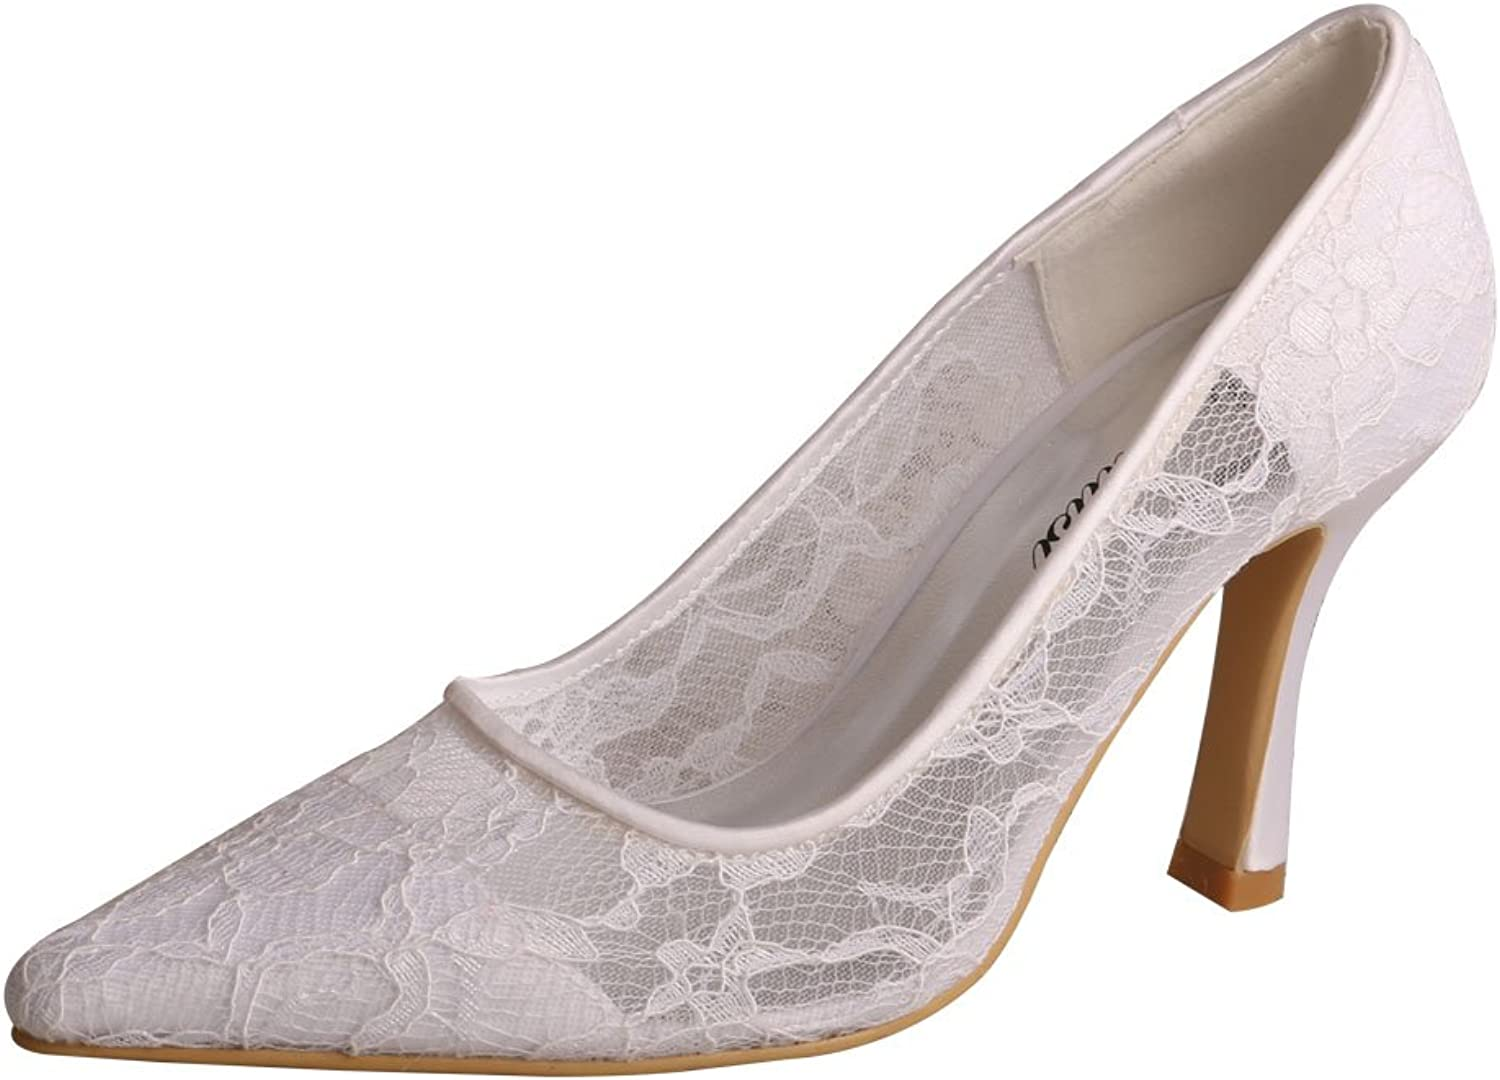 Wedopus MW741 Women's Stiletto Heel Pumps Pointed Toe White Lace shoes Wedding